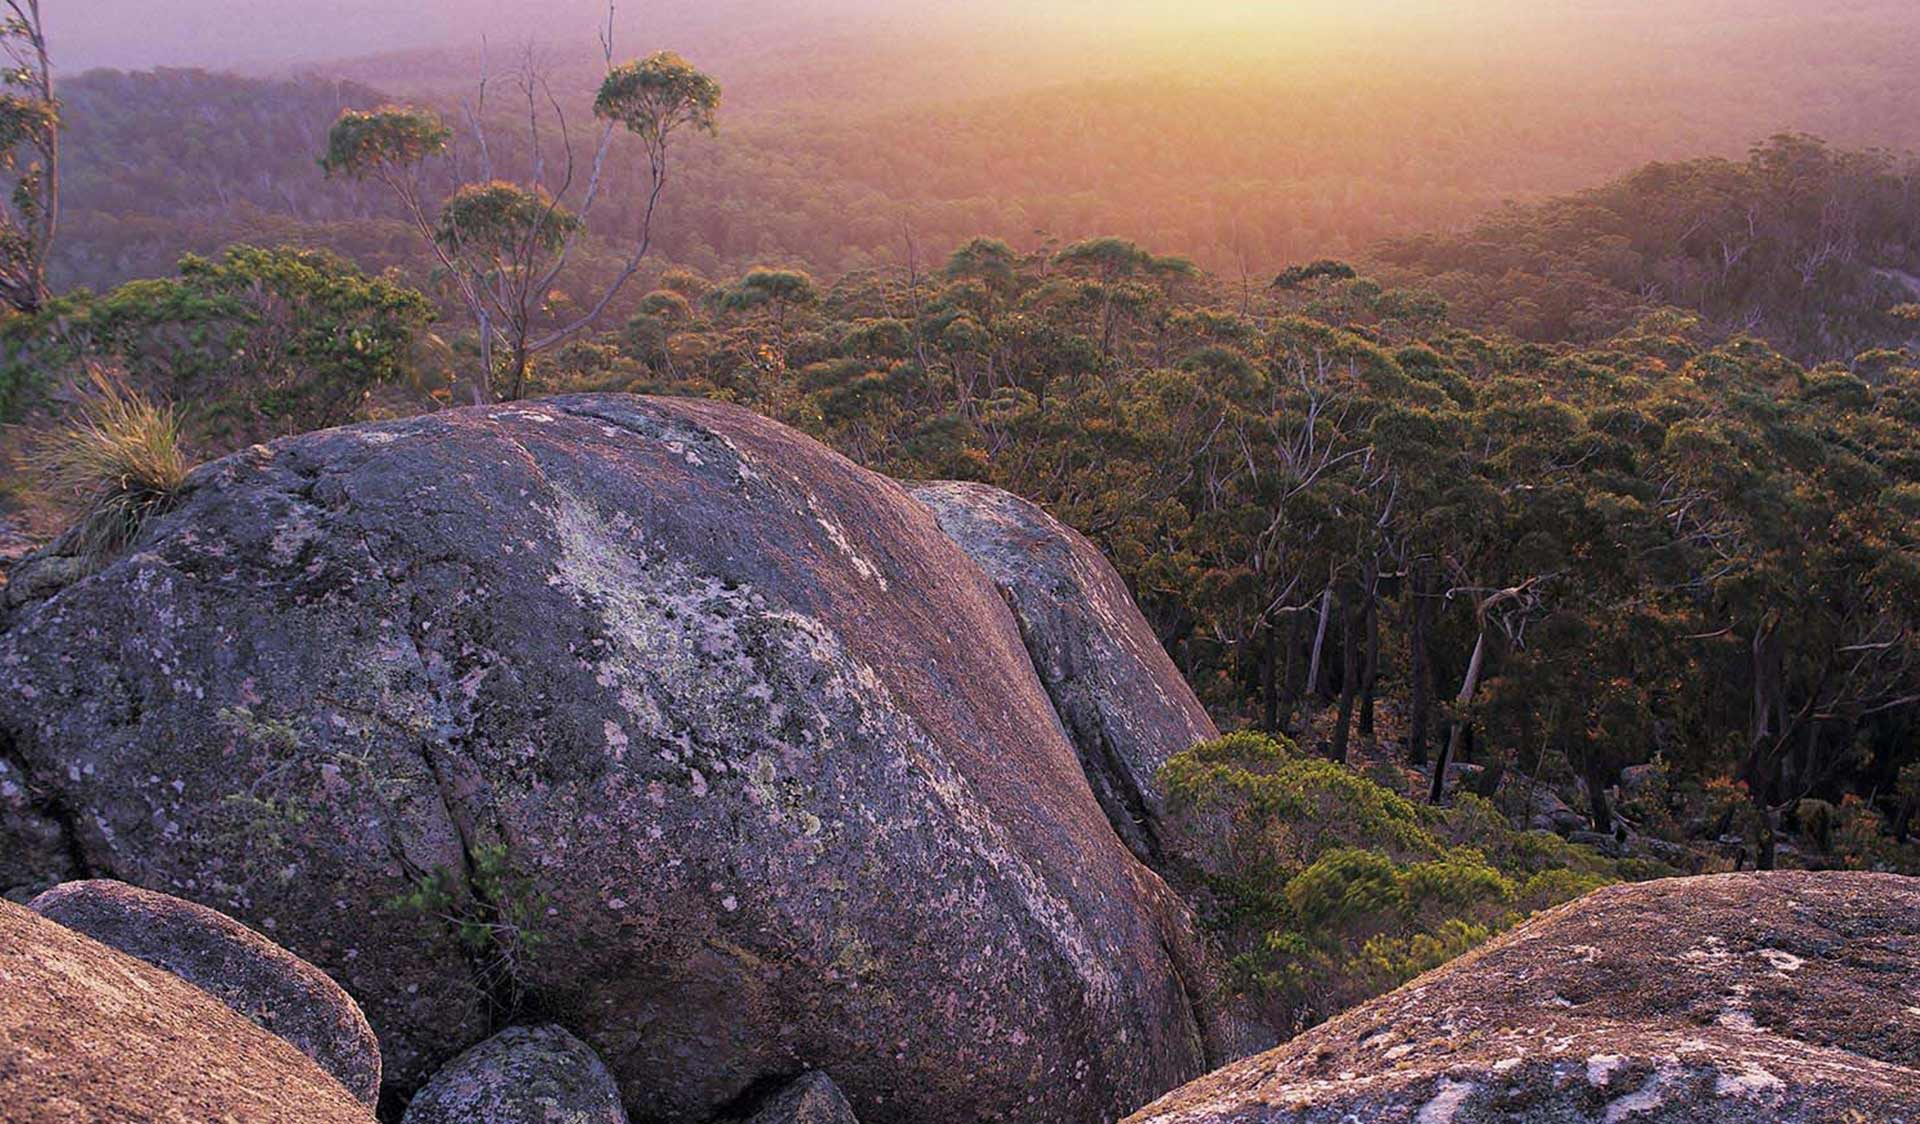 The view from Genoa Peak at sunset in the Croajingolong National Park near Mallacoota.